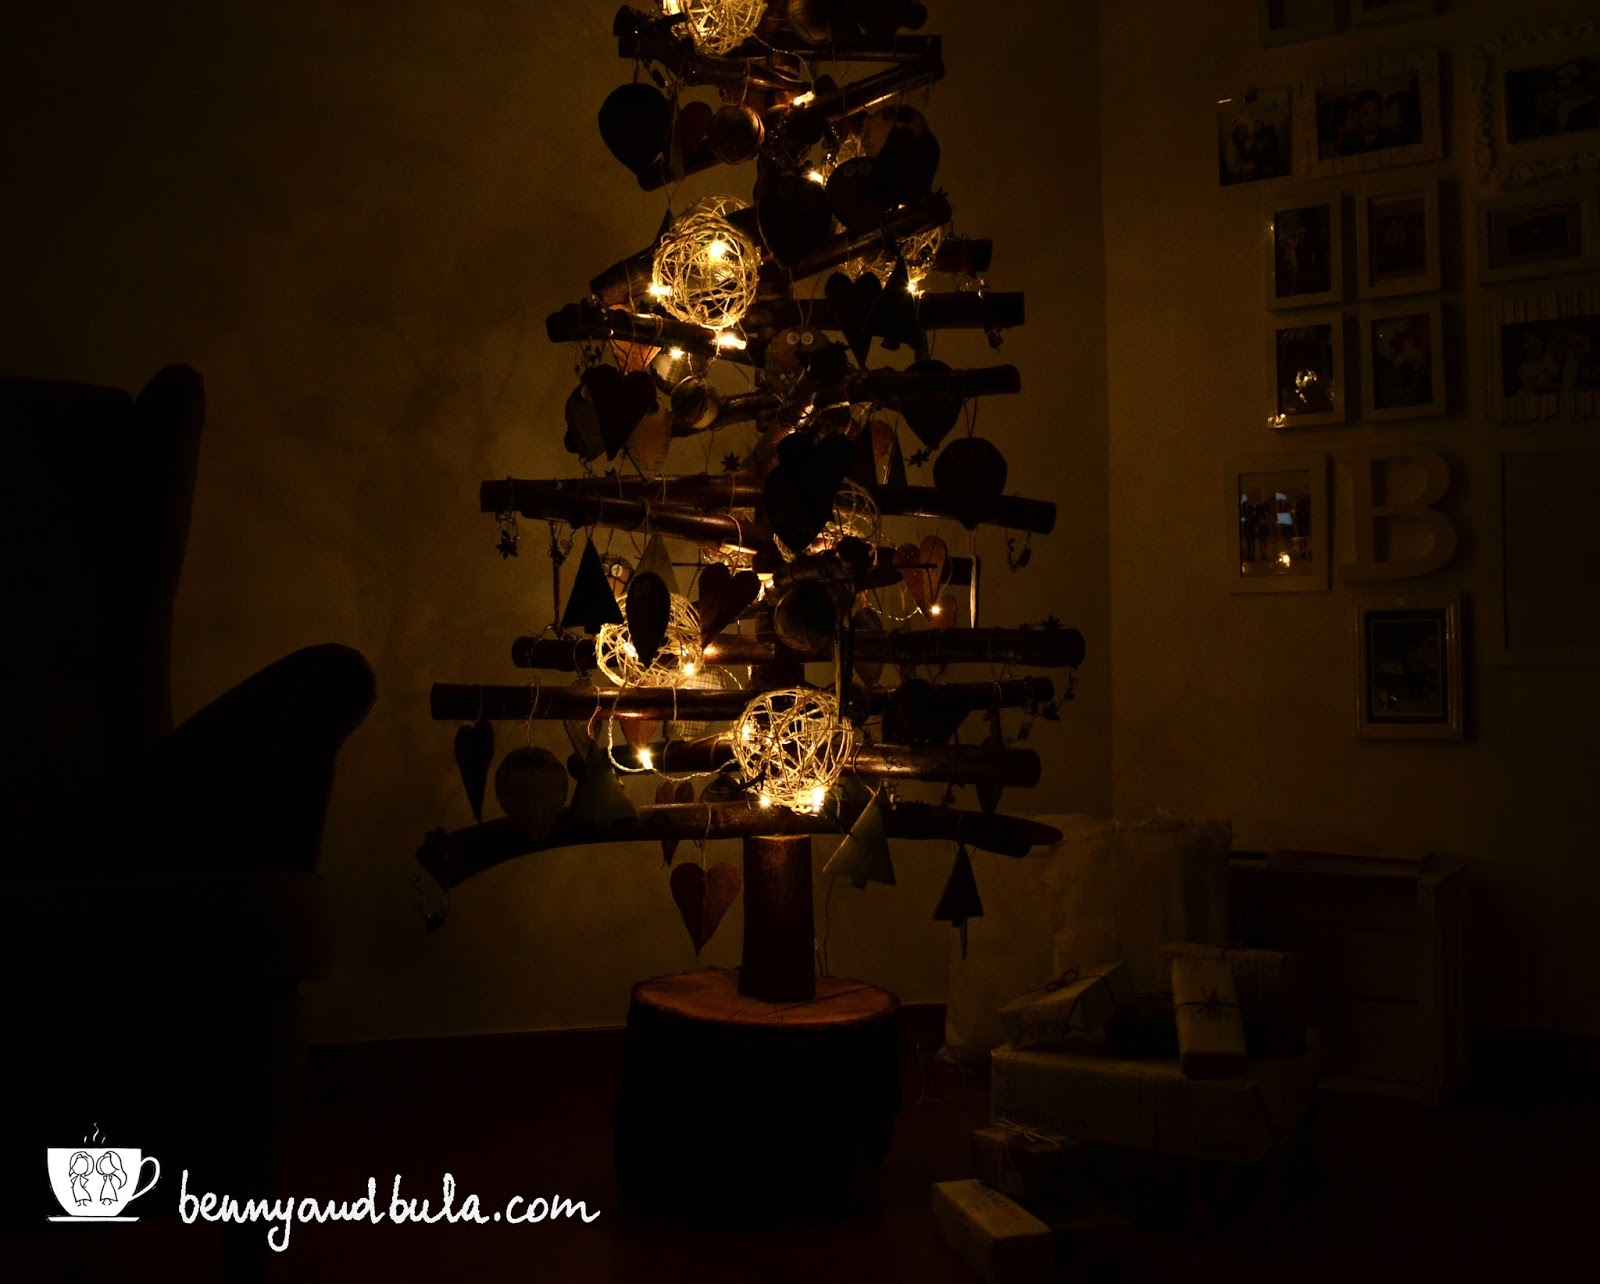 Albero di Natale, luci di sera/DIY Christmas Tree by night